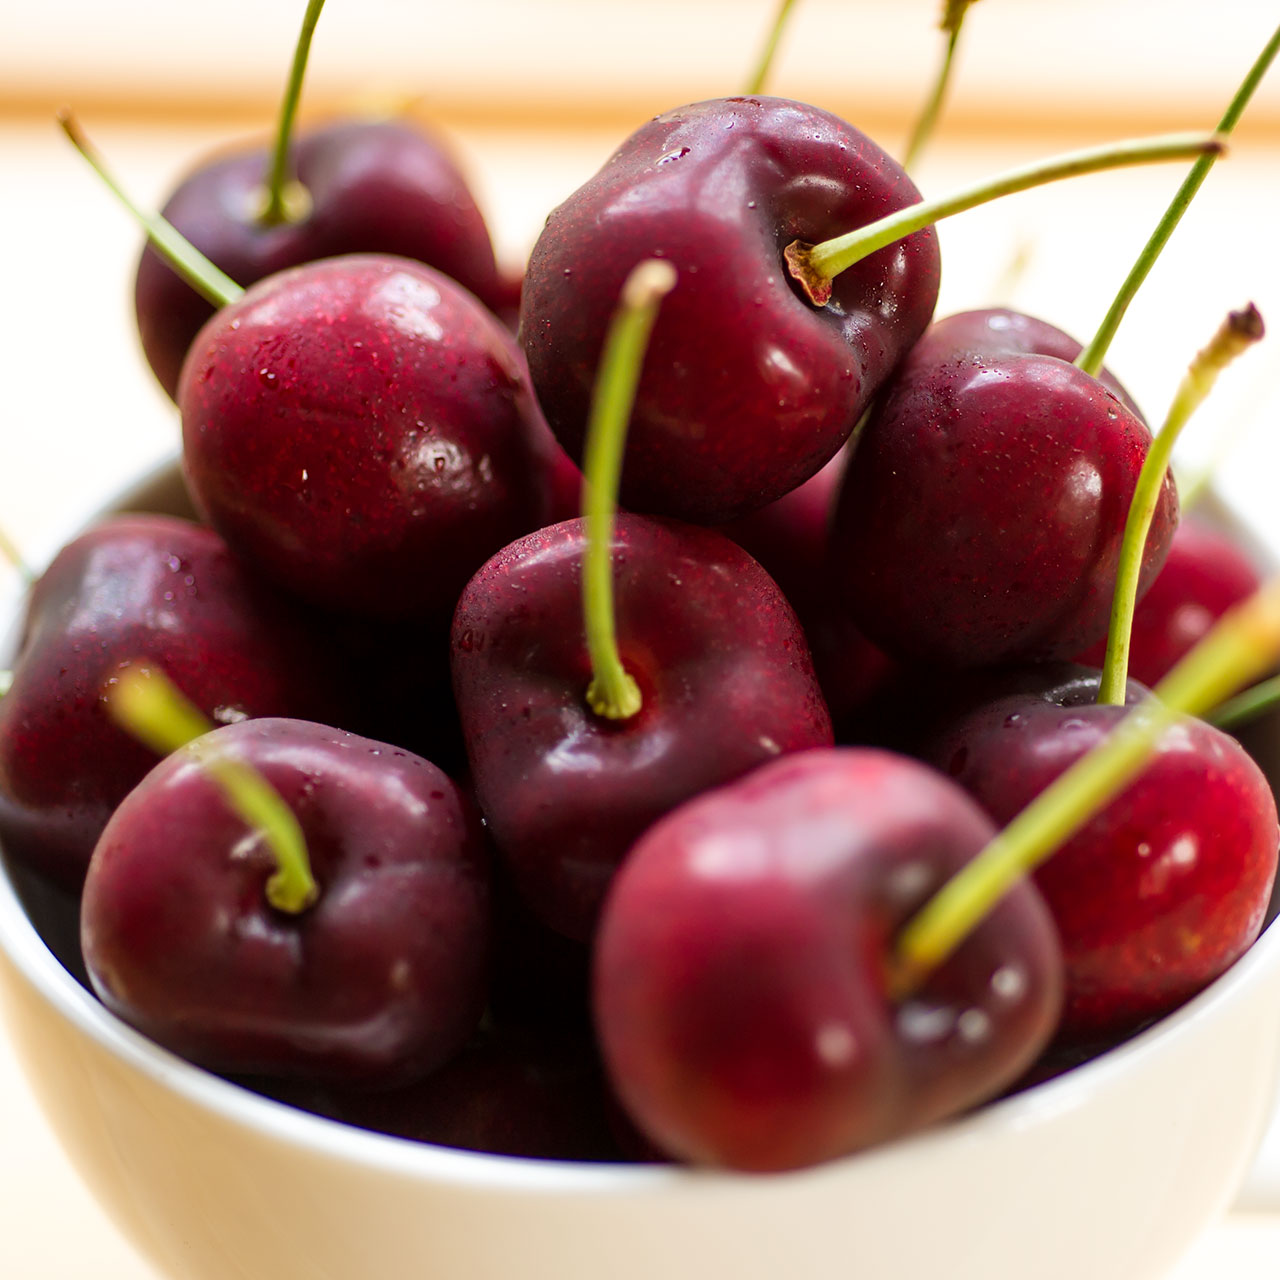 Season of Sweet Red Cherries - 15 pounds total